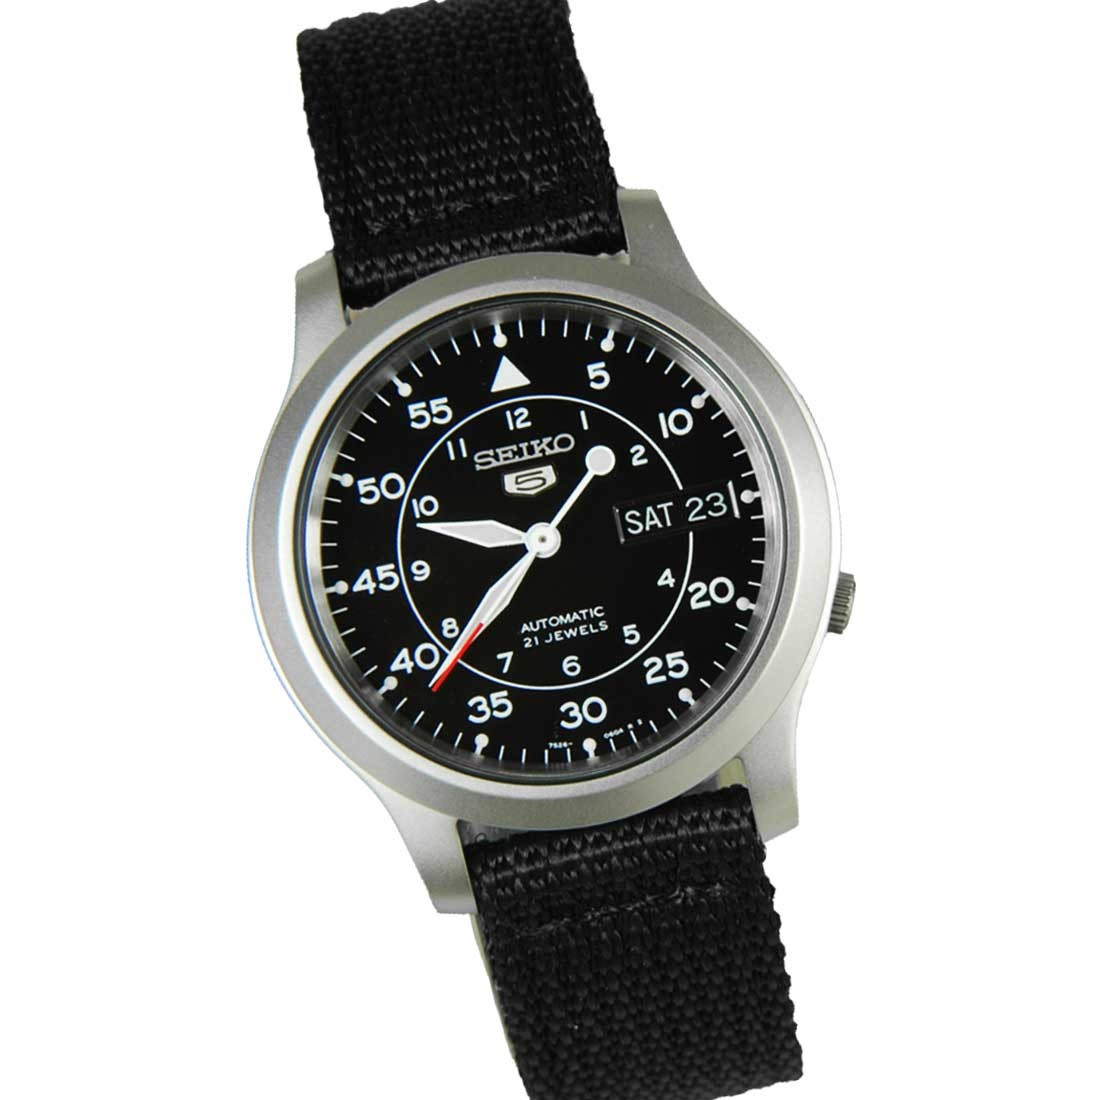 Snk809k2 Seiko Military Watch